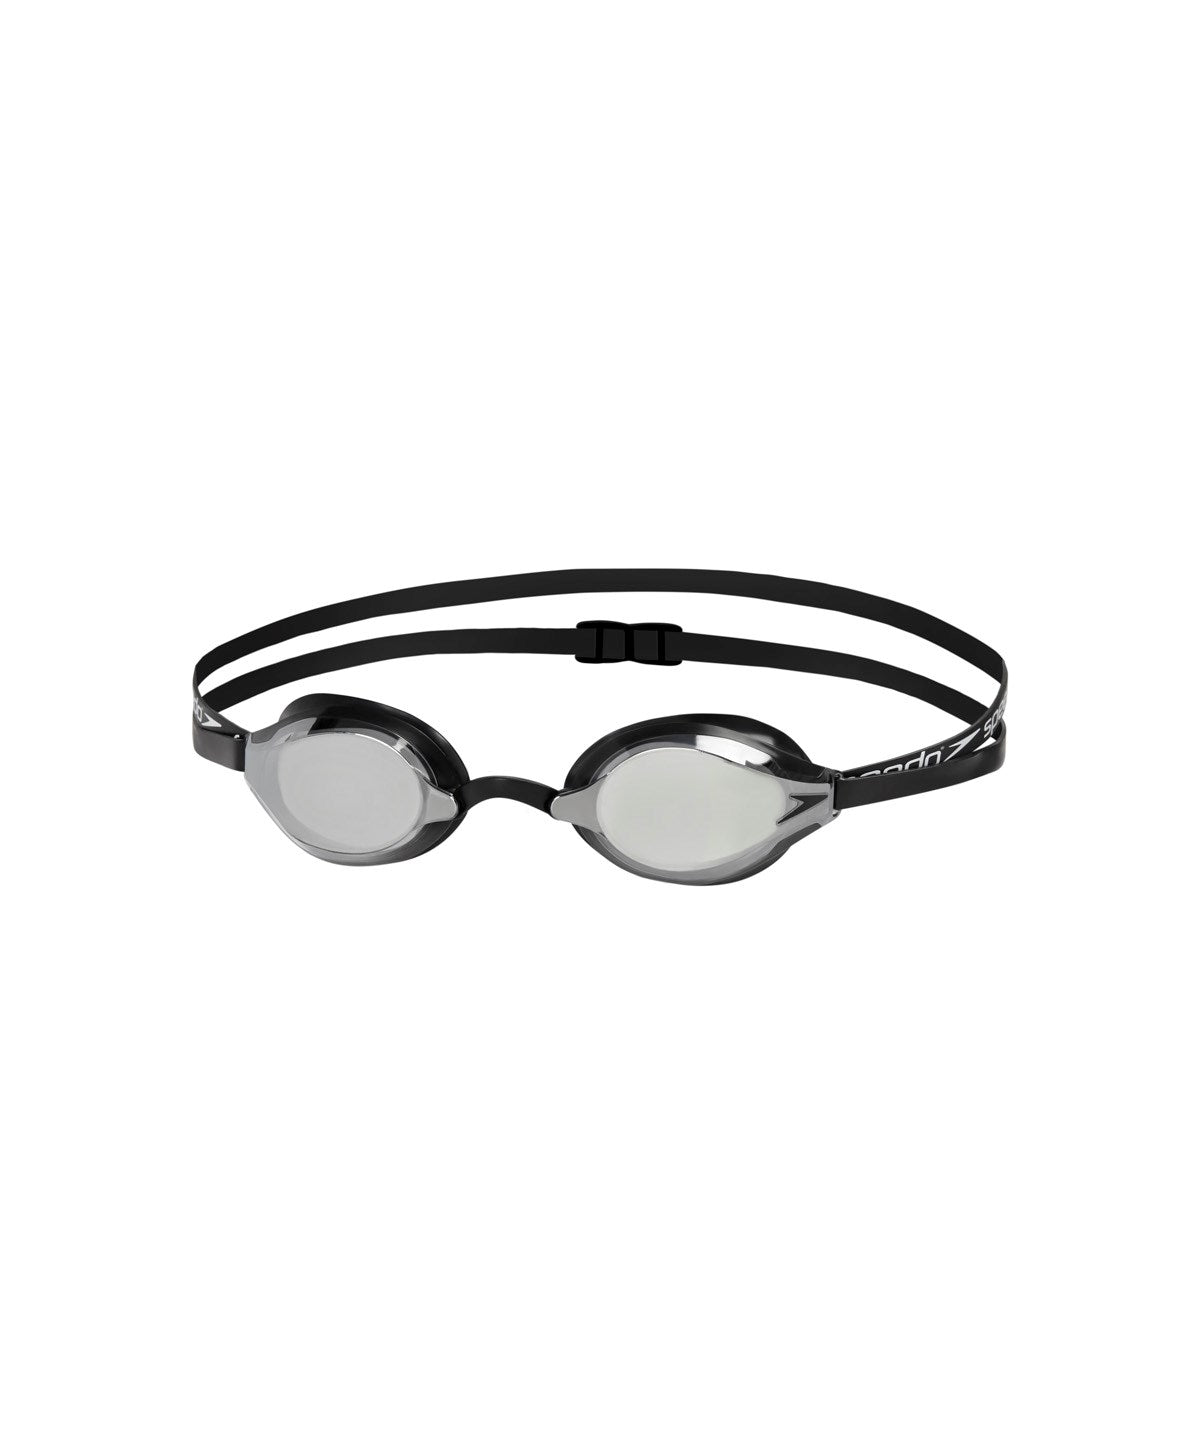 SPEEDO Goggles FASTSKIN SPEEDOSOCKET 2 MIRROR 10897